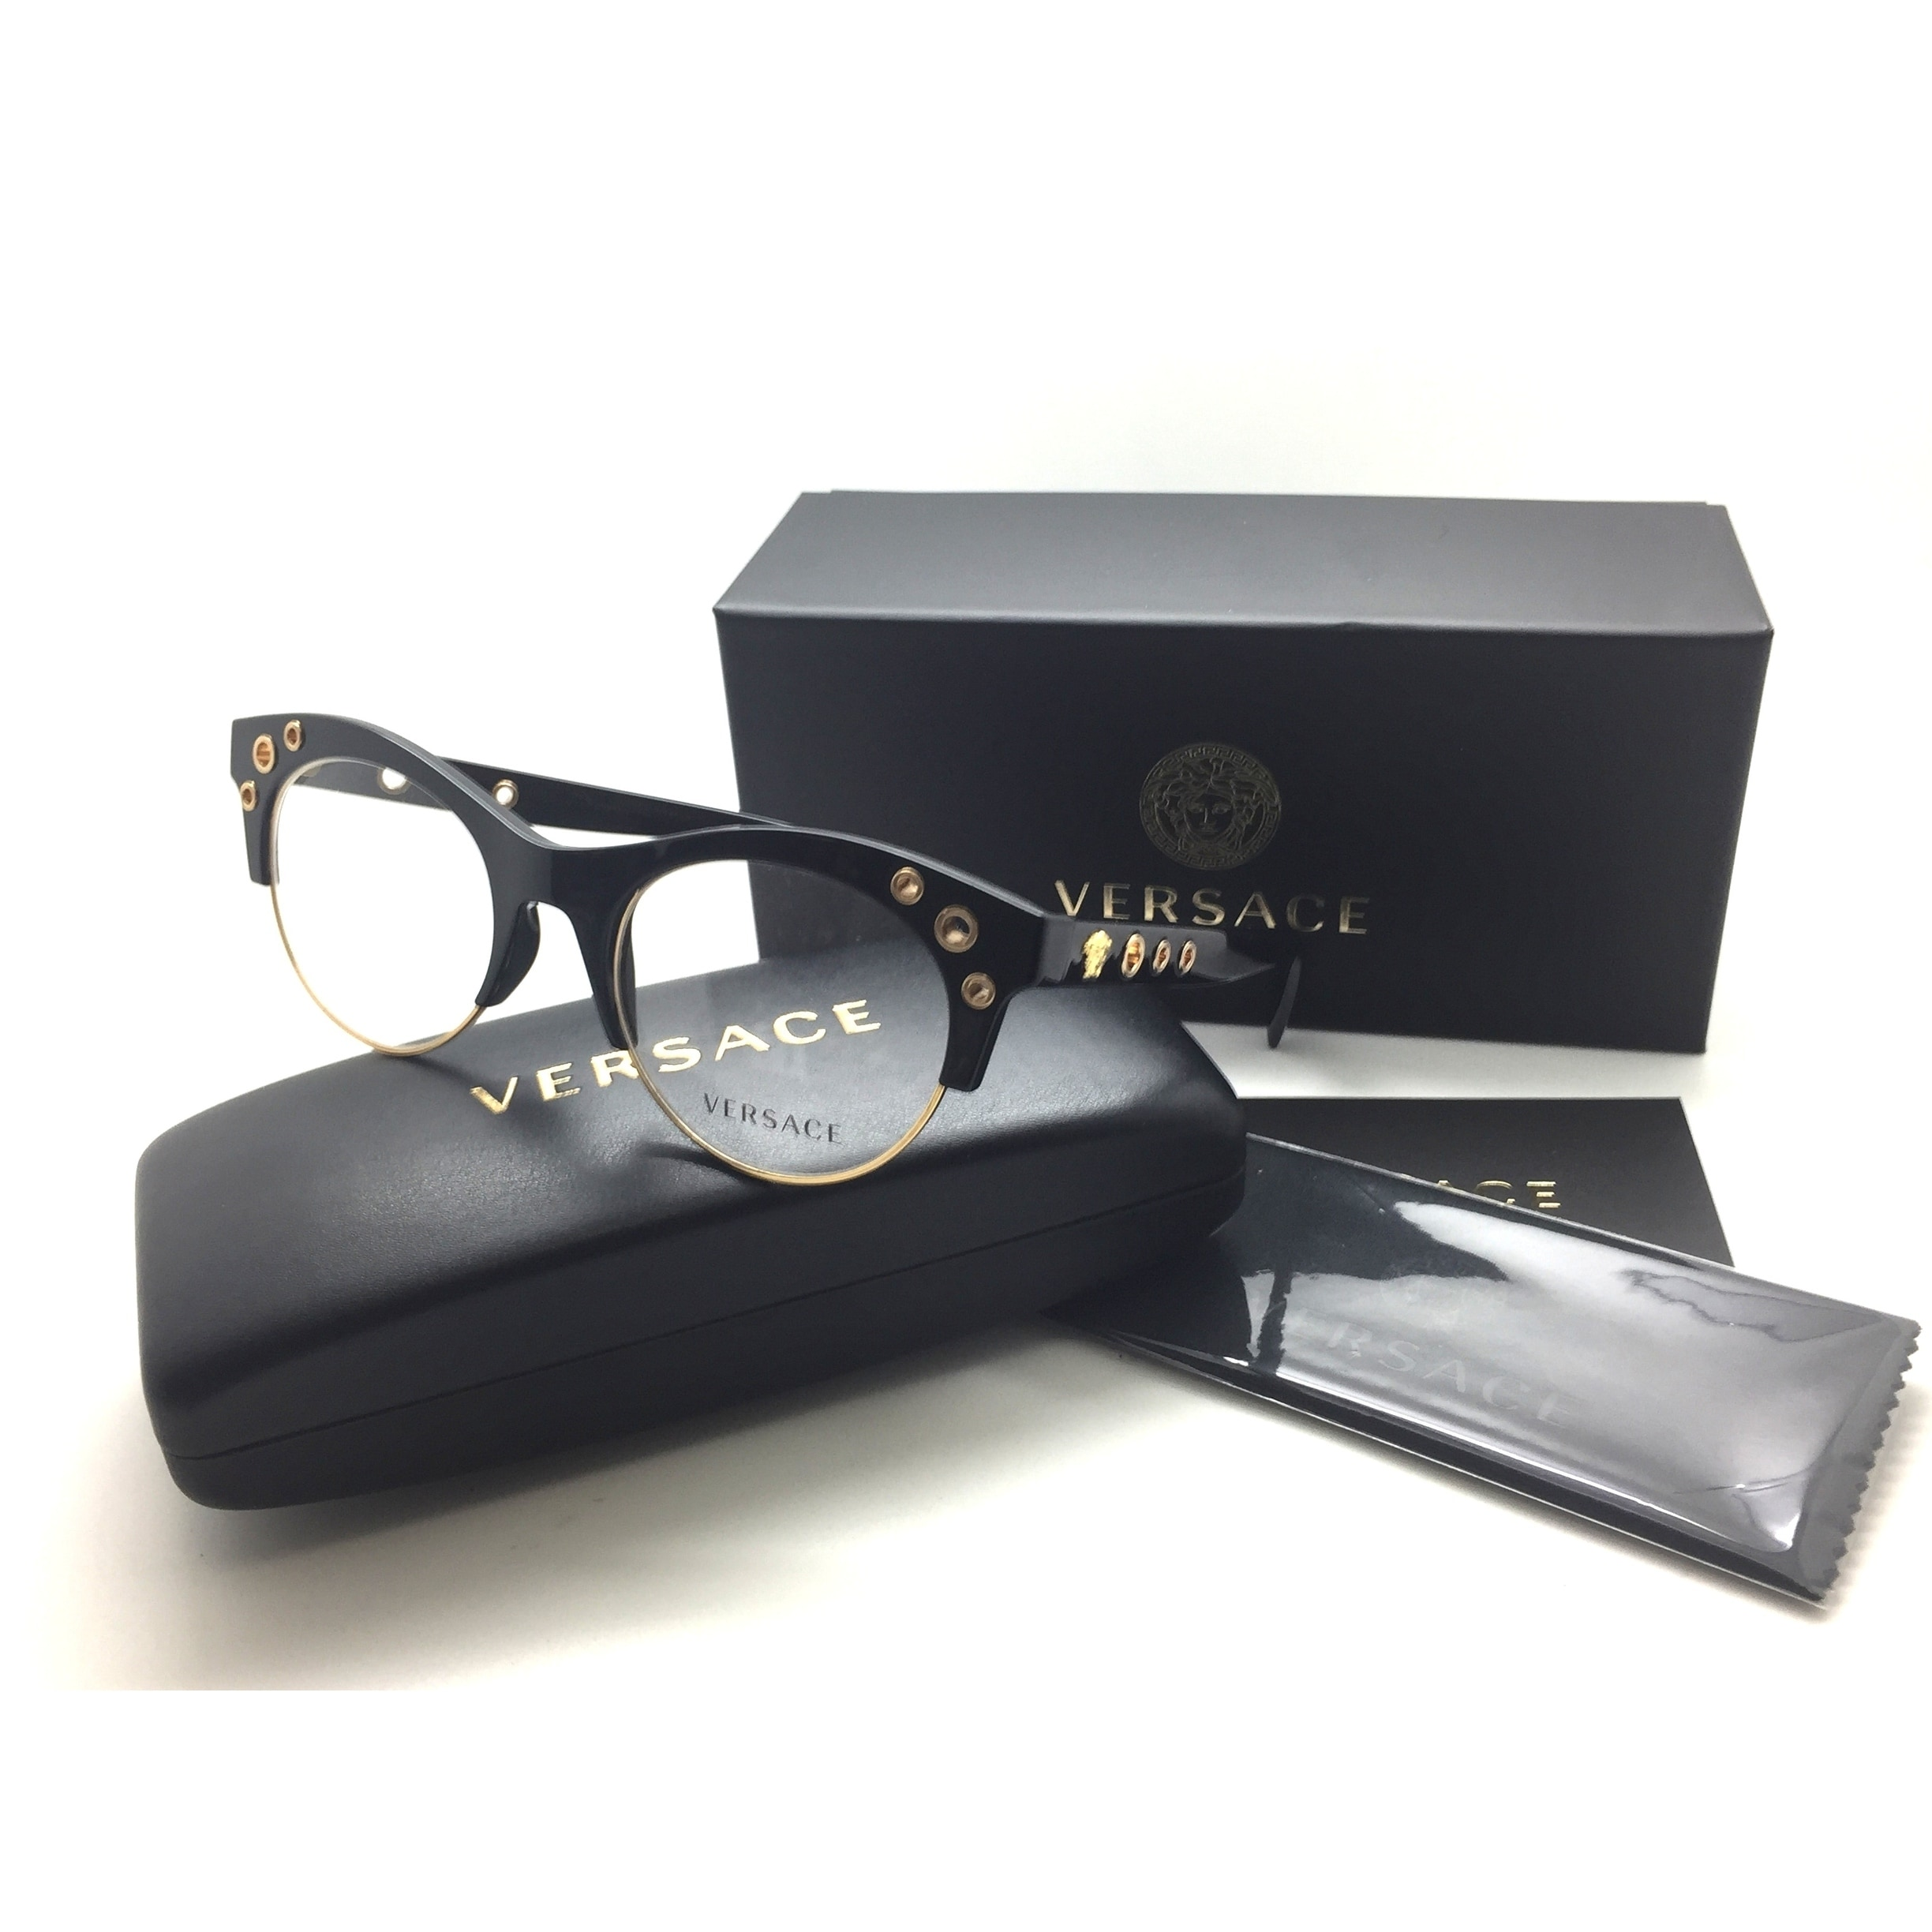 f8279297393 Shop VERSACE Eyeglasses MOD. 3232 GB1 52-20 140 Black   Gold Cat Eye Frames  - Free Shipping Today - Overstock - 22873178